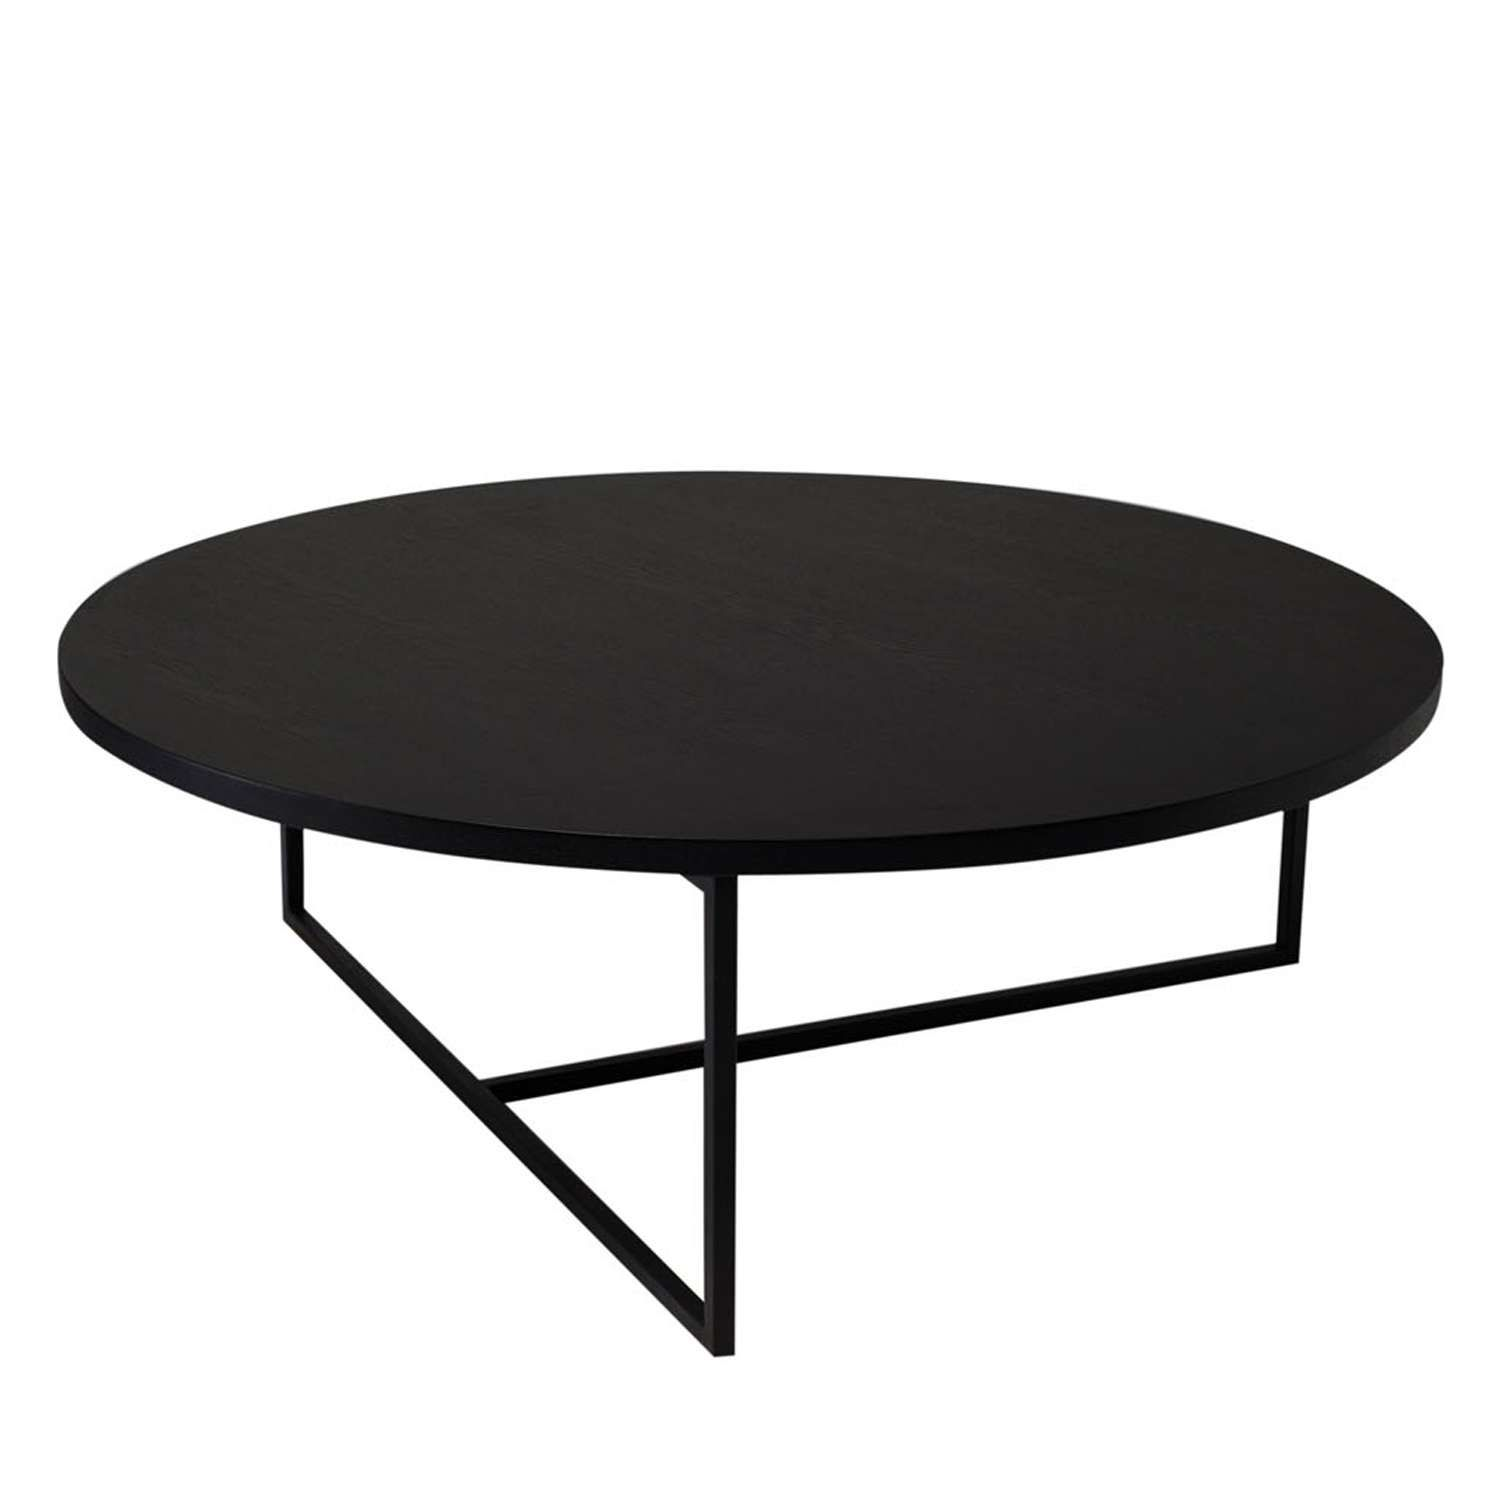 Black Ash Round Coffee Table Modern Coffee Table Round Black